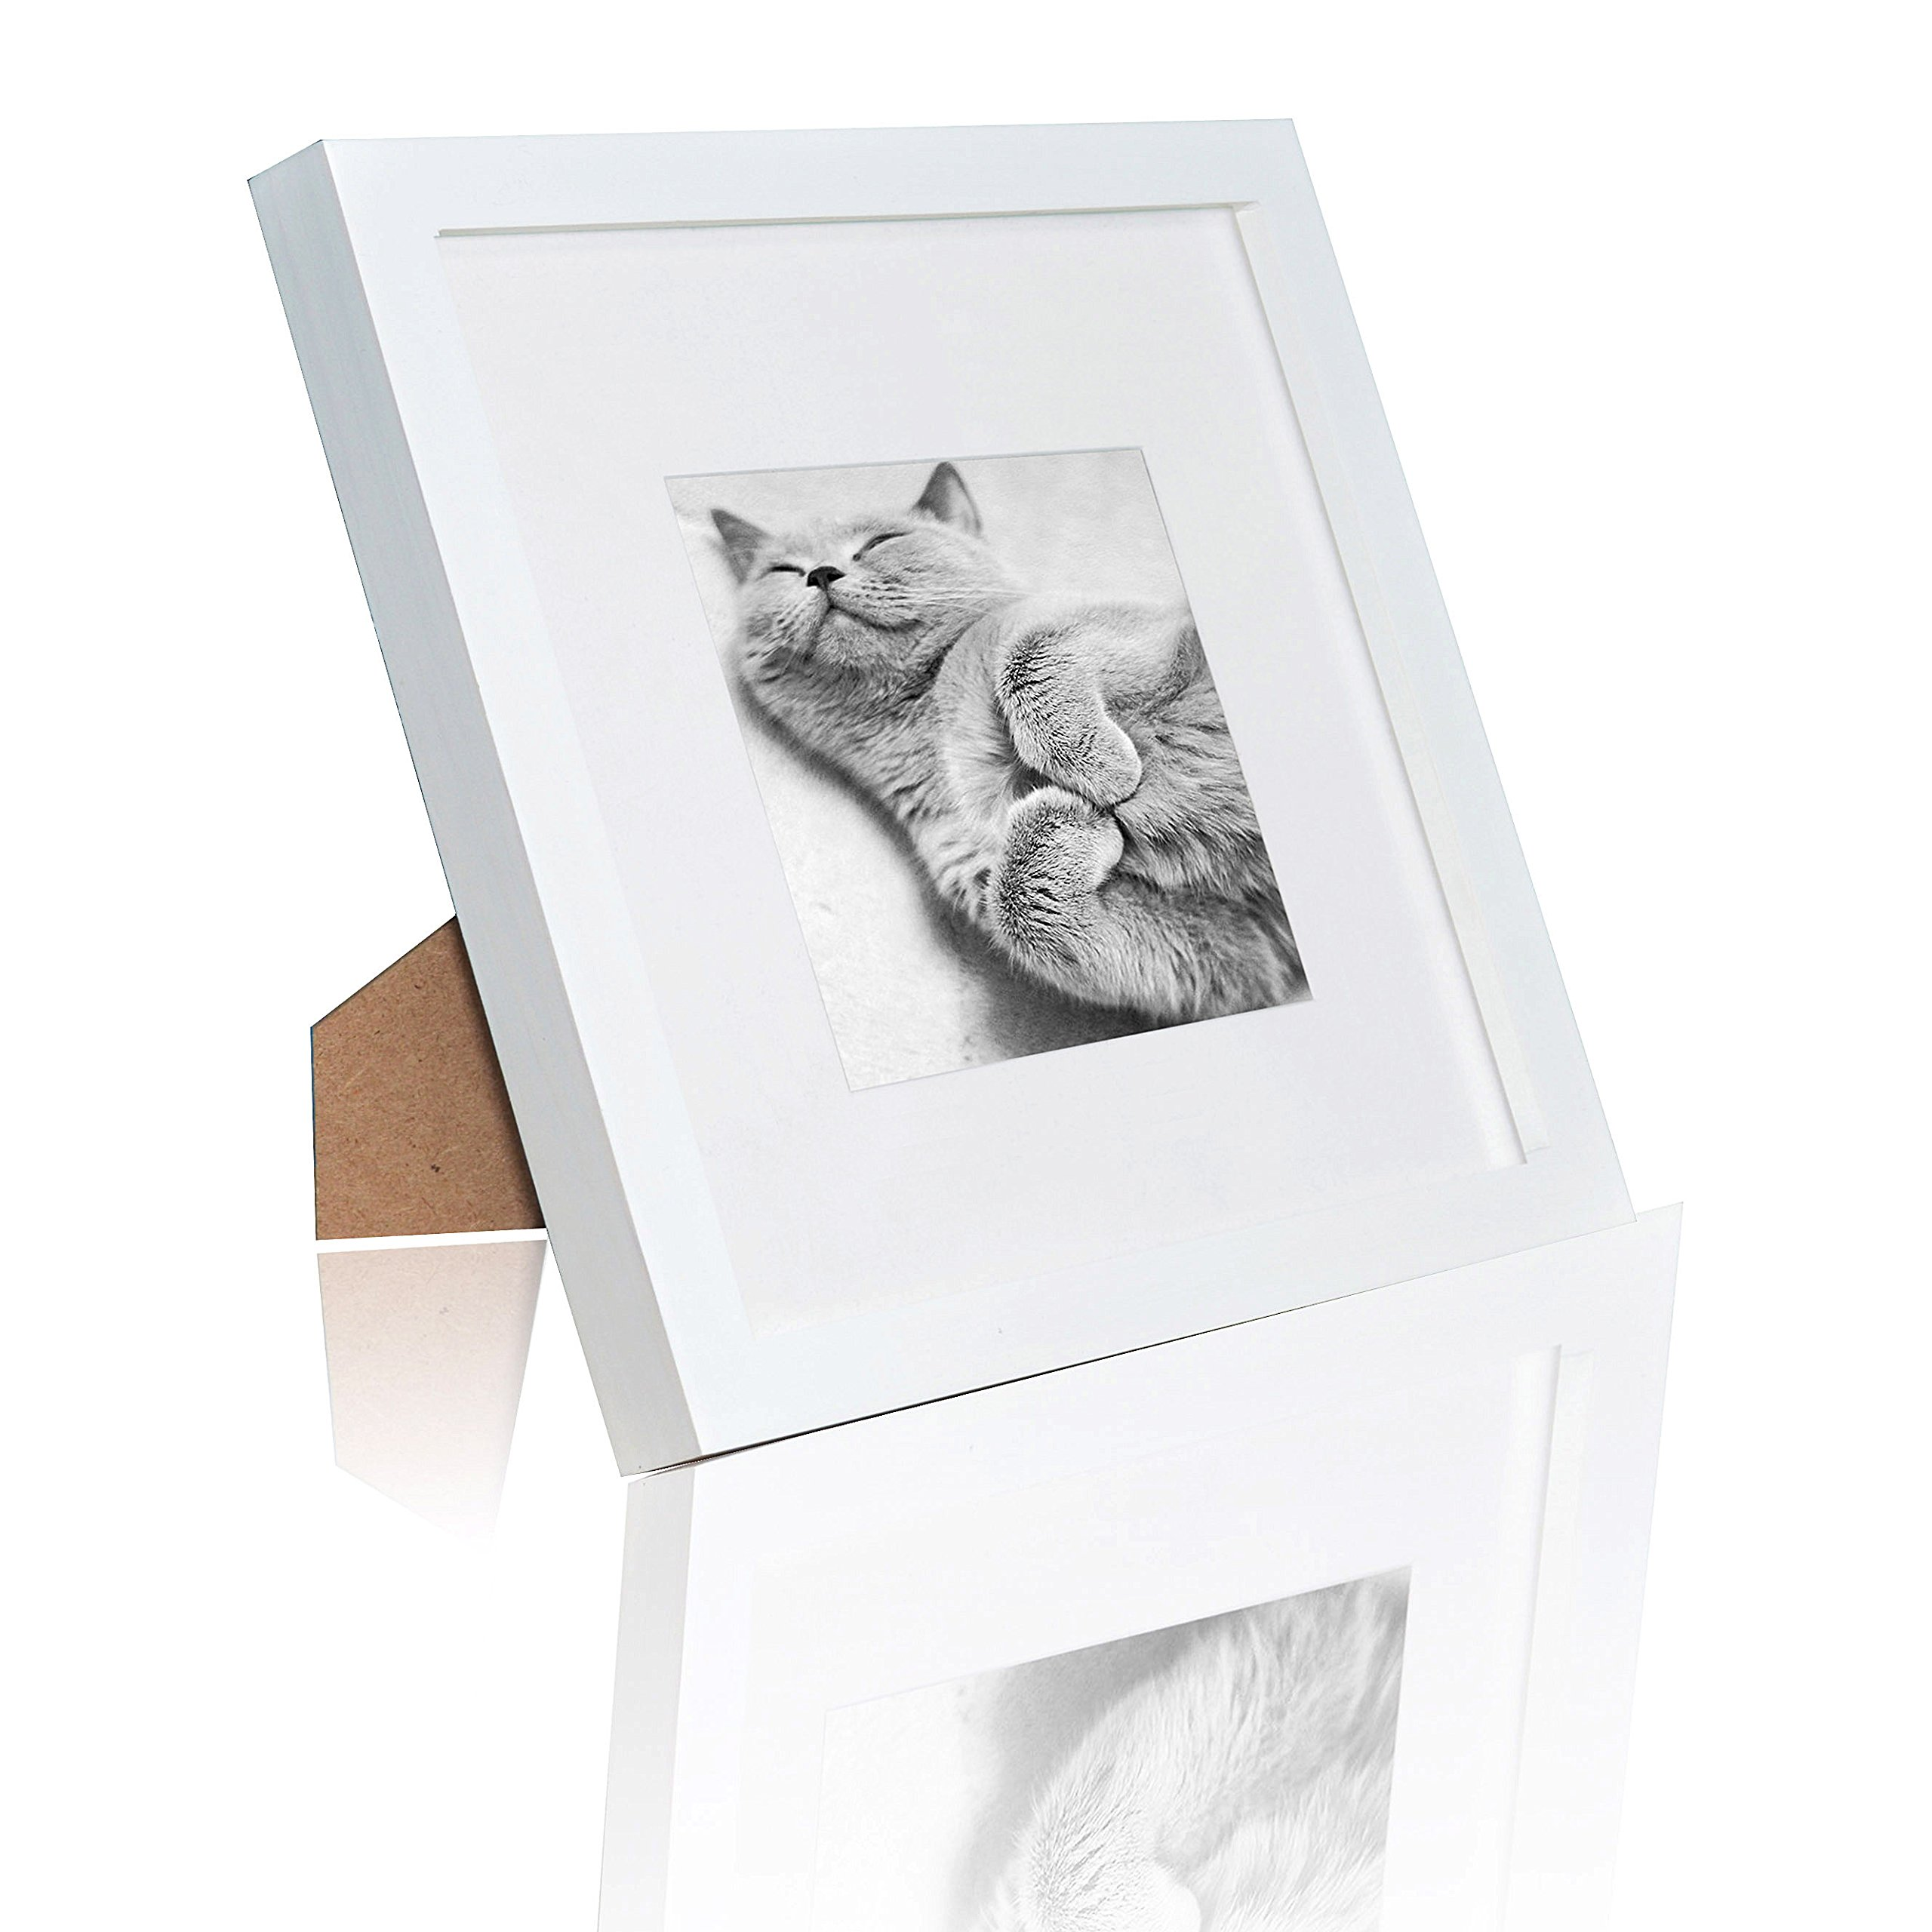 Ray & Chow 8x8 Square White Picture Frame - Solid Wood - Glass Window - with Picture Mat for 4x4 Photo - Frame Width 2cm